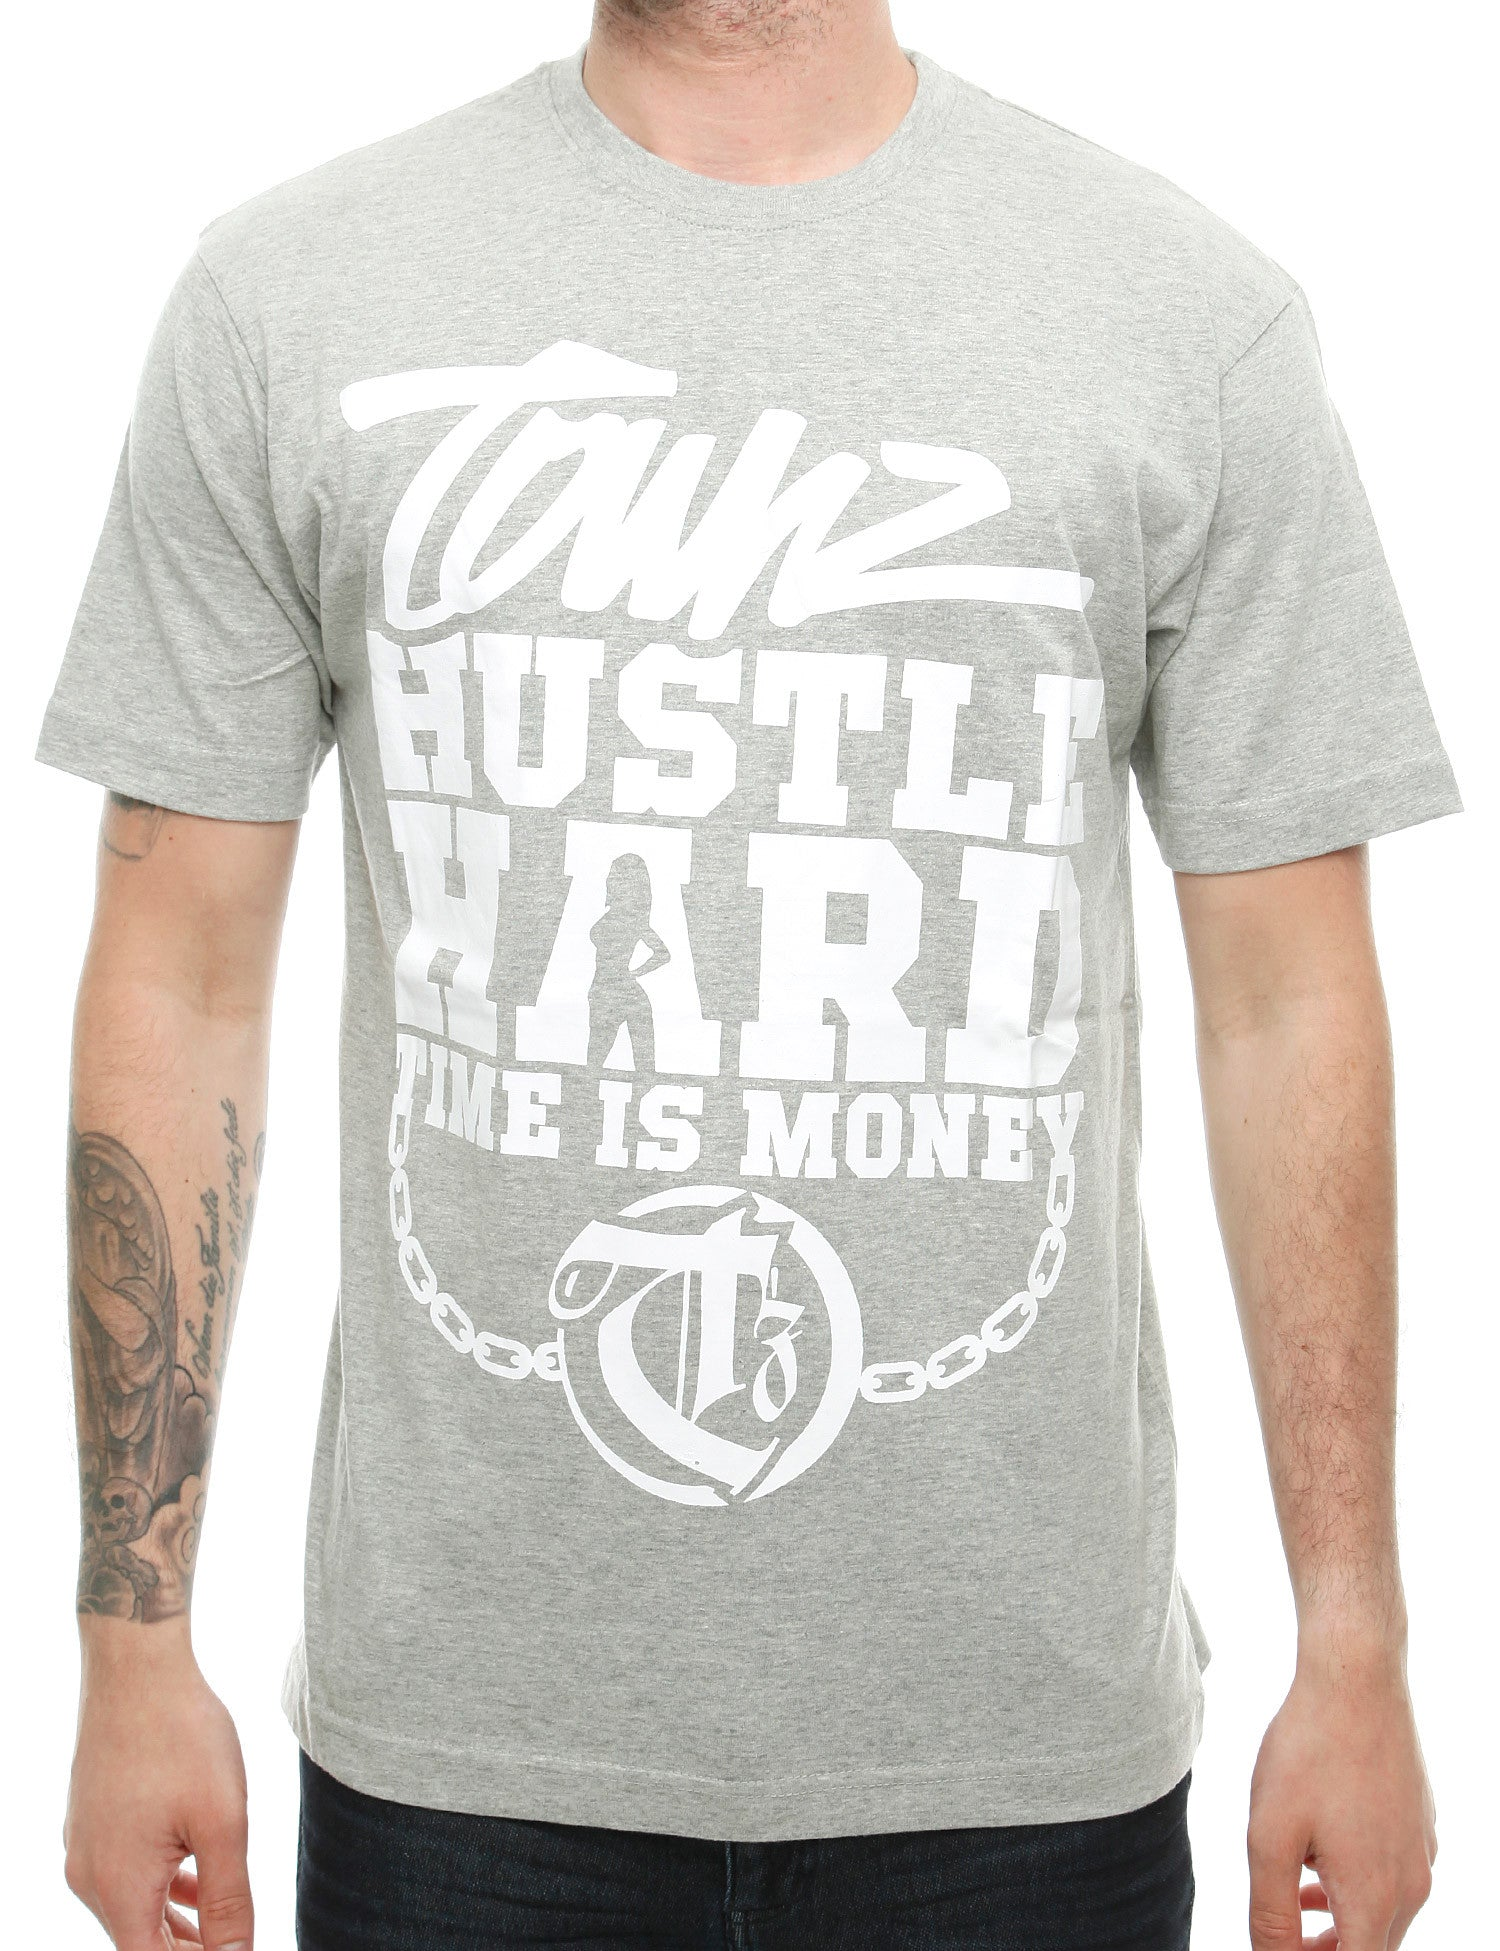 Townz Hustle Hard T-Shirt TNZ16-002 Grey